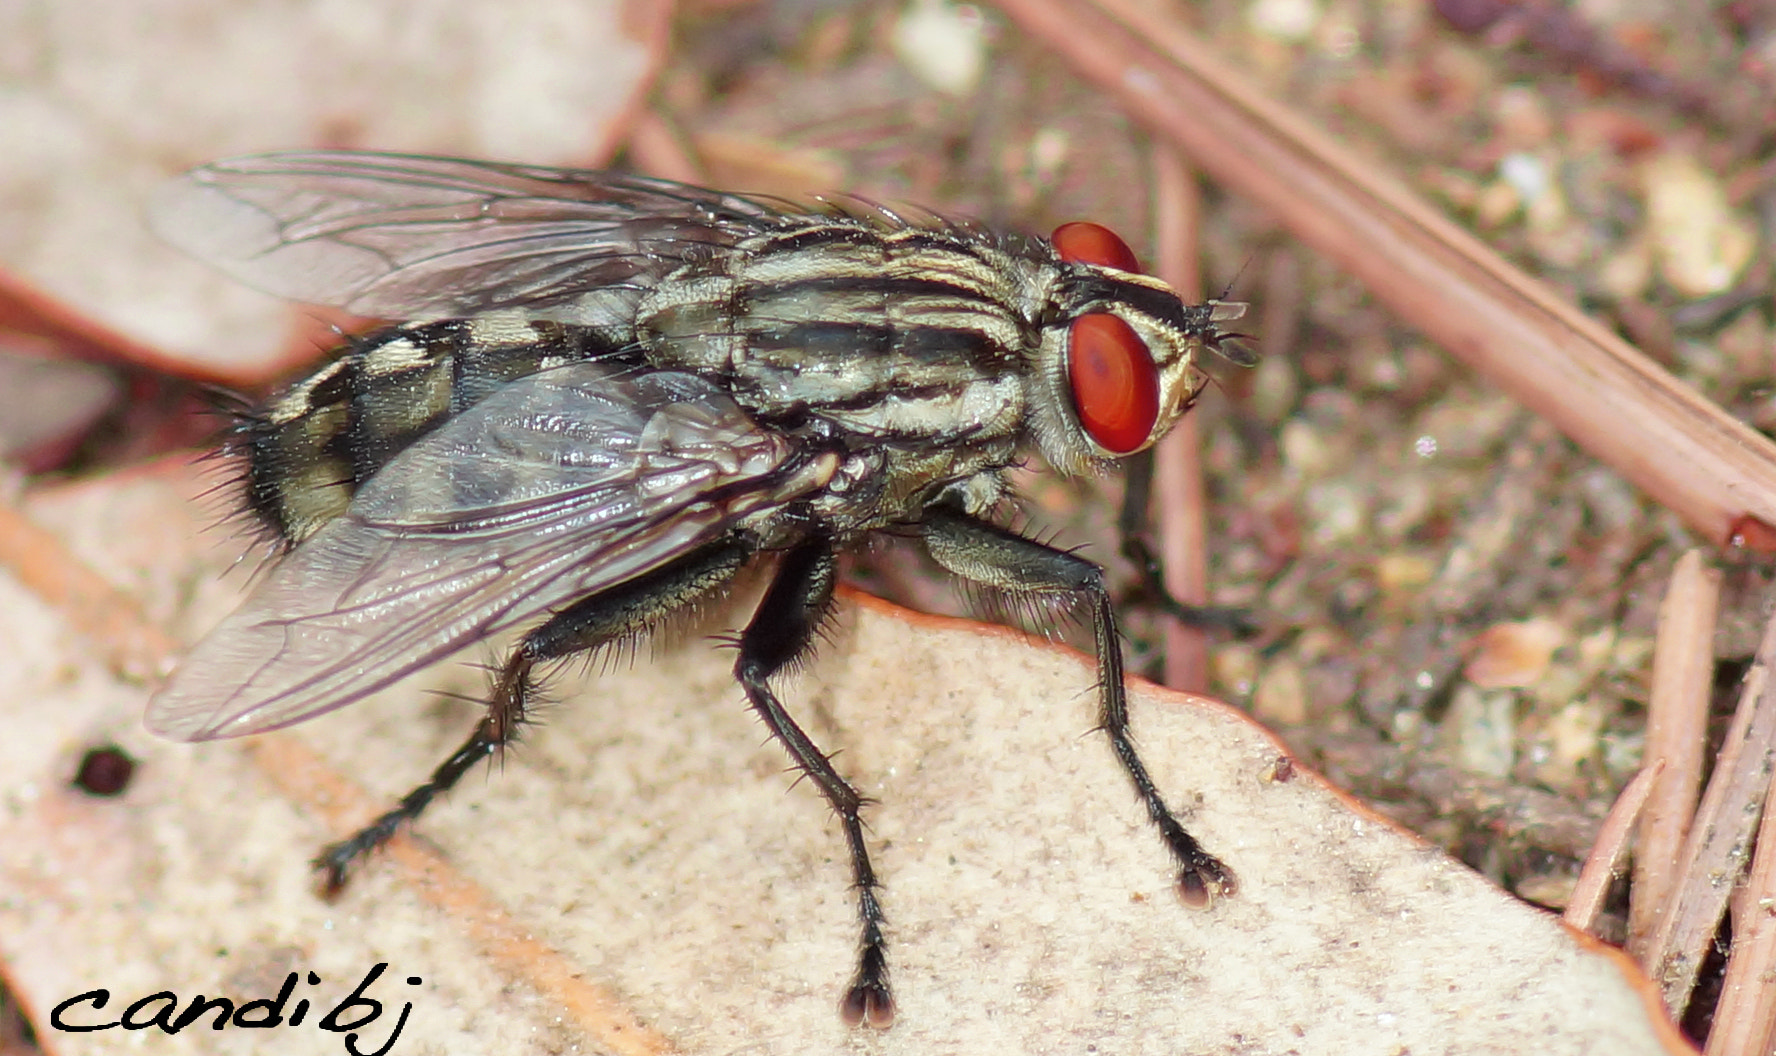 Photograph Mosca by Candido Bermudez on 500px